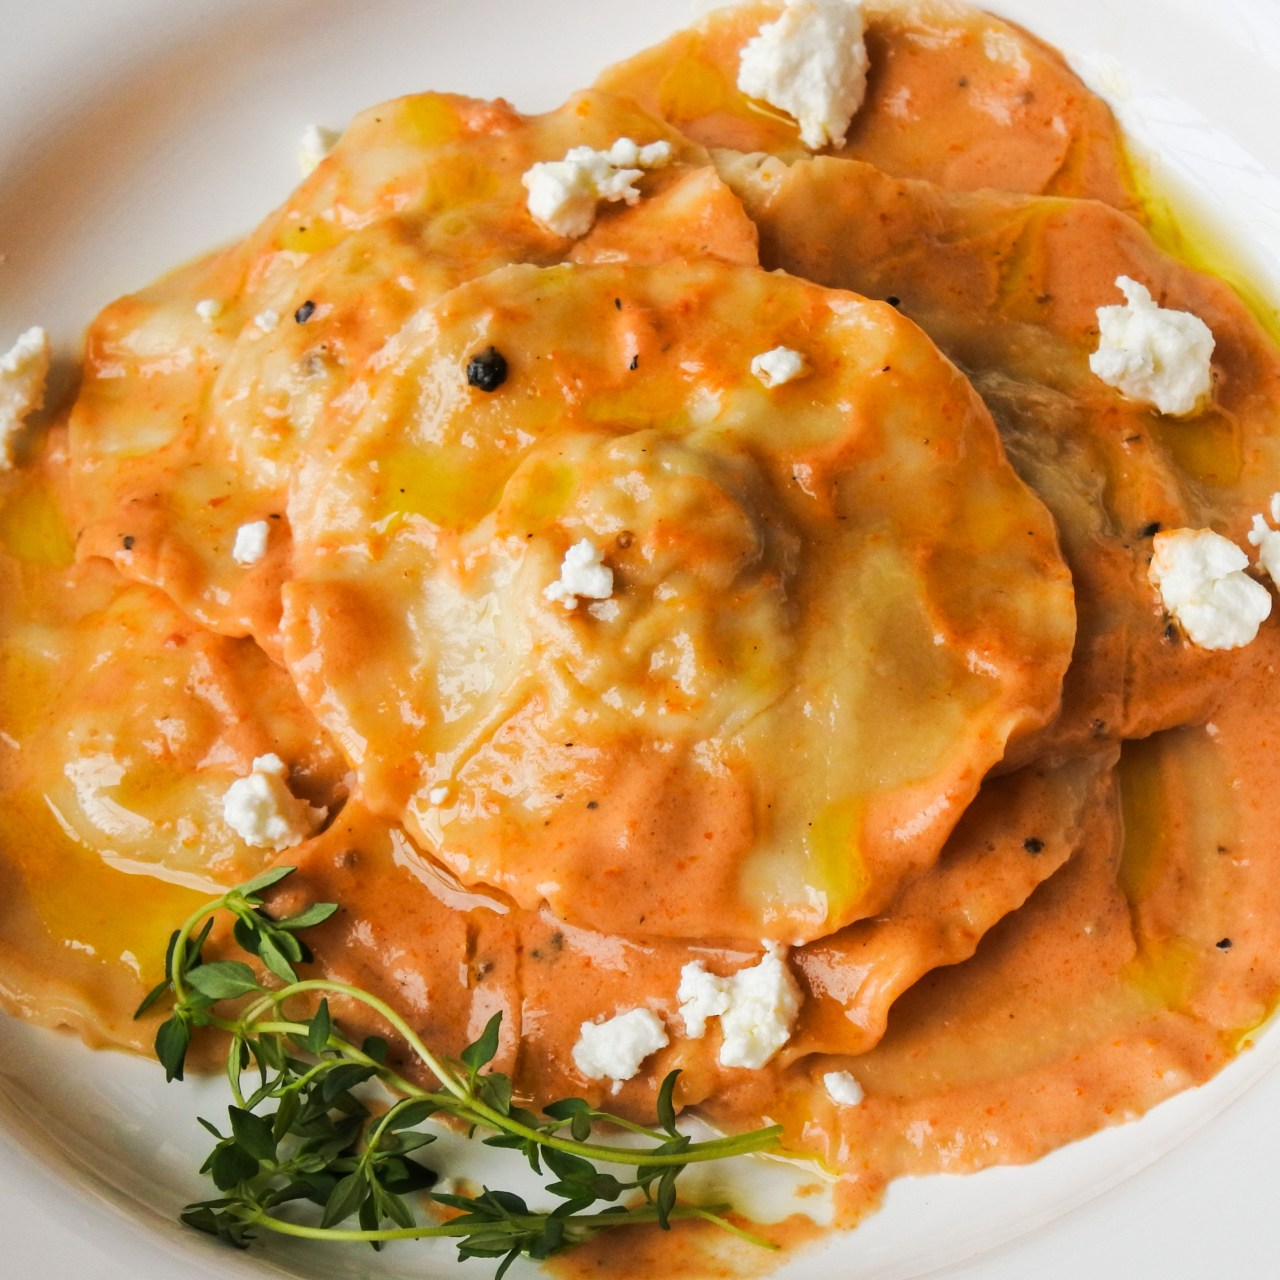 Chicken Ravioli with Sun-Dried Tomato Cream Sauce garnished with a sprig of thyme and goat cheese